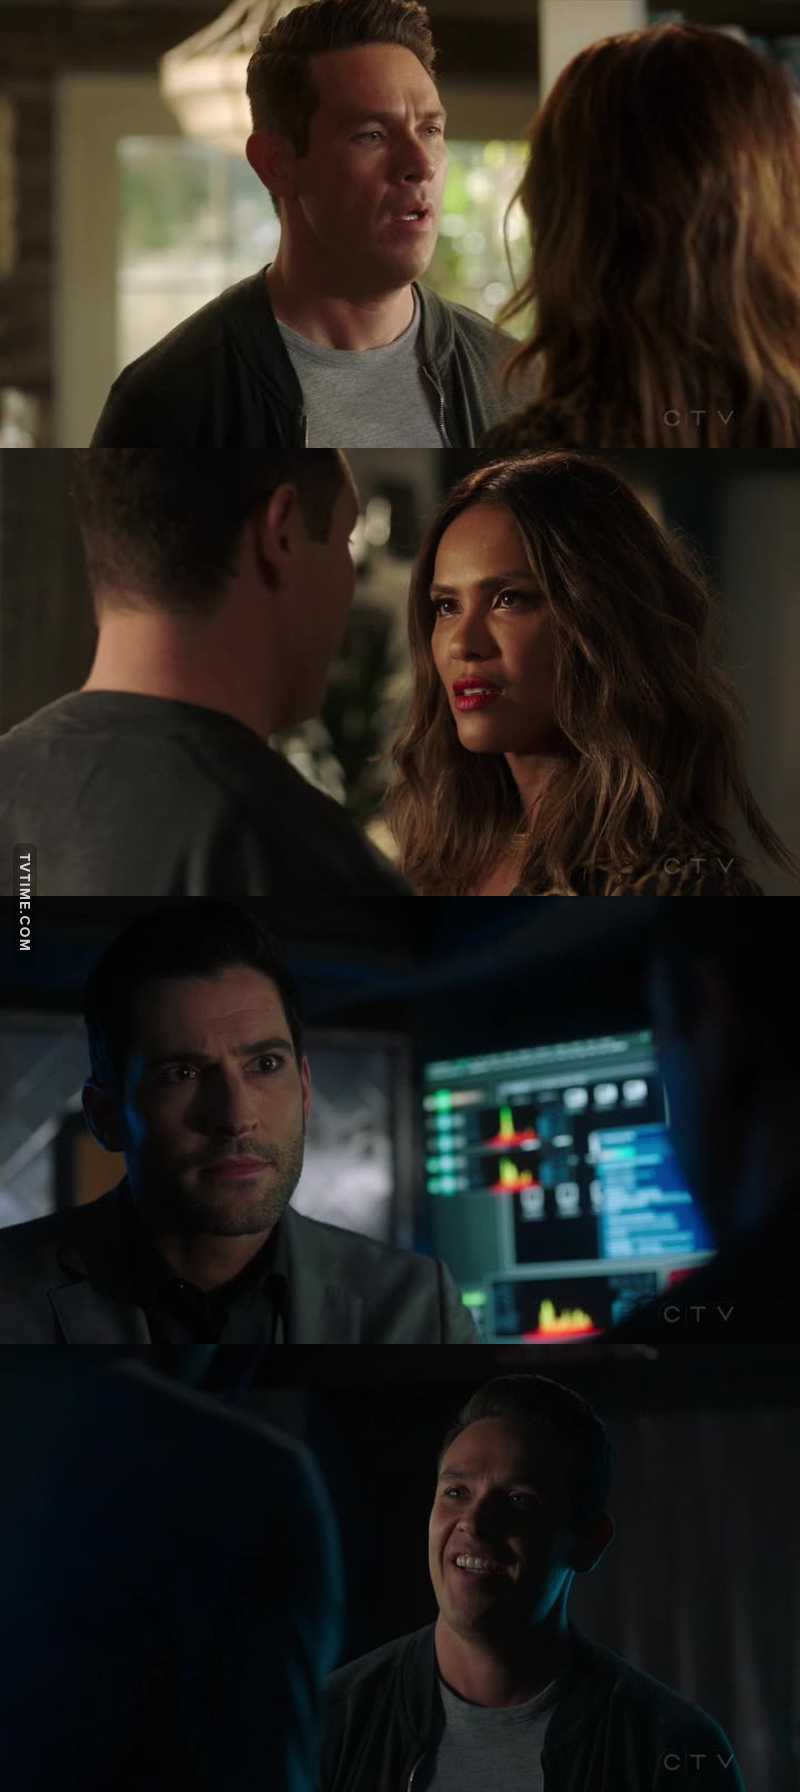 Dan is so supportive. He worries about his daughter, but also care about Maze and ask what's going on. Everytime Lucifer ask for advice, he gave it to him even when Lucifer's calling him a douche or boring. Last week he cheered Pierce and didn't get a thanks. Everyone needs a Dan, not bad for a Douche.